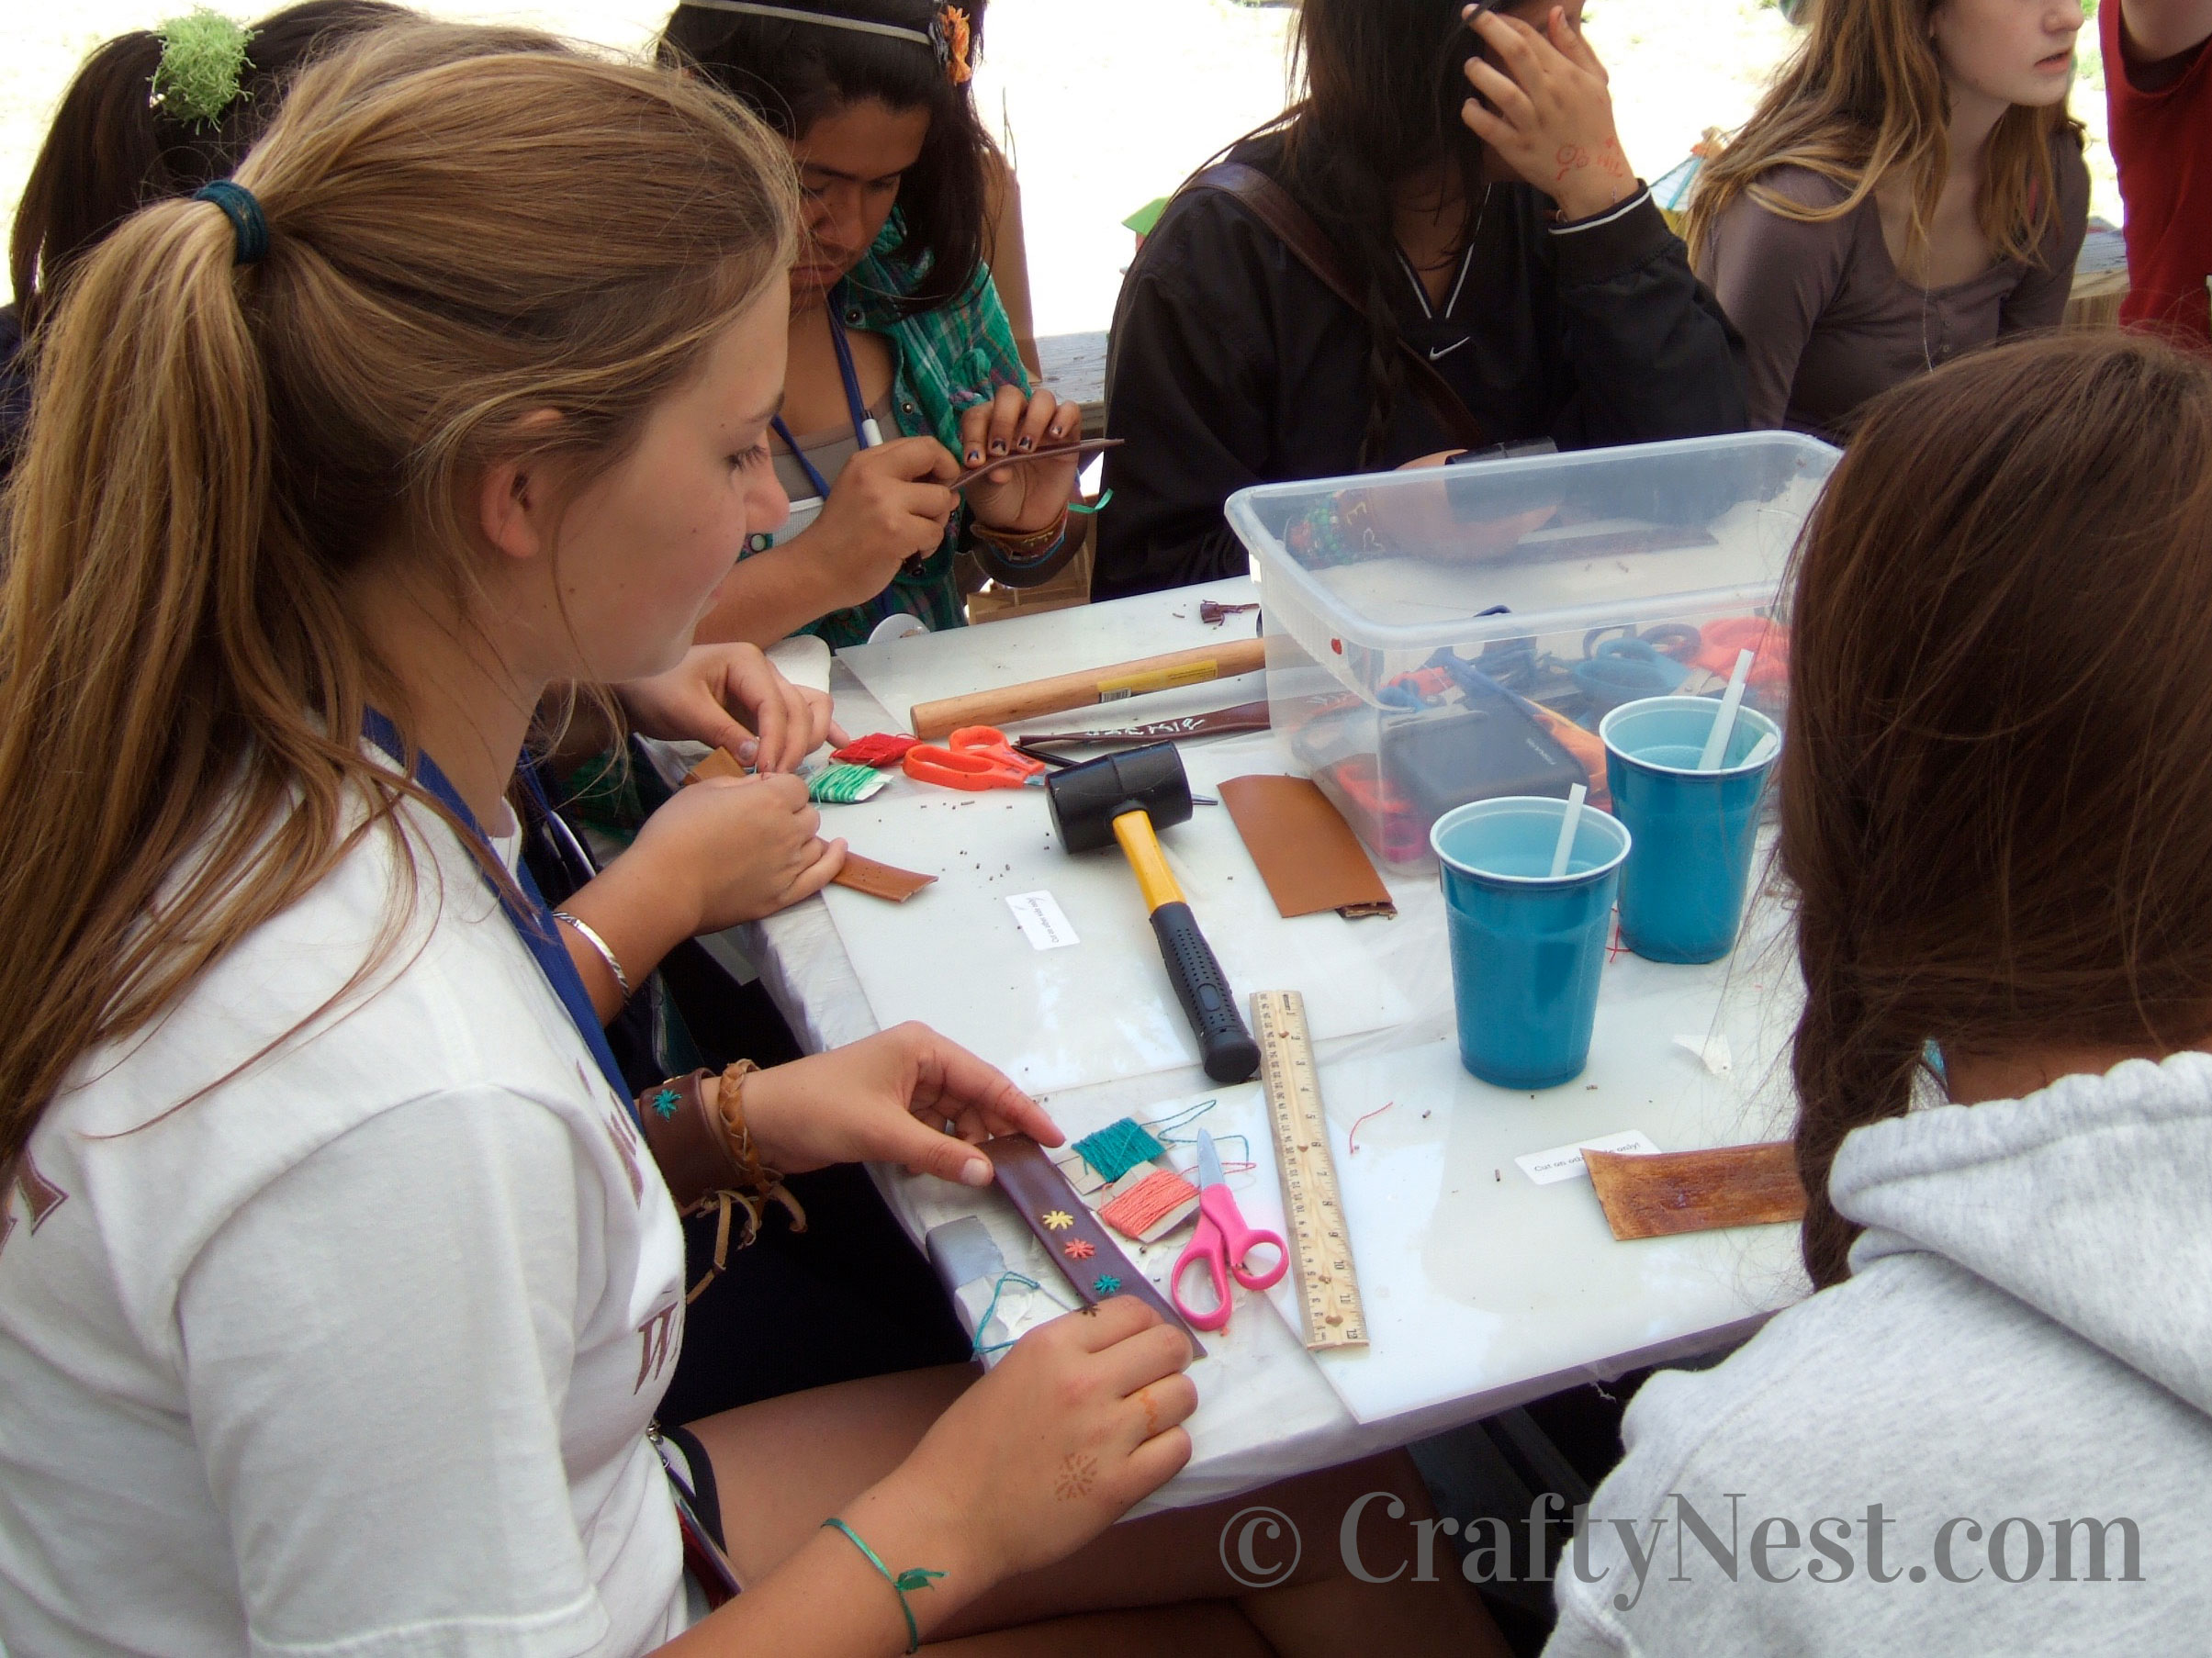 Girls making bracelets at camp, photo